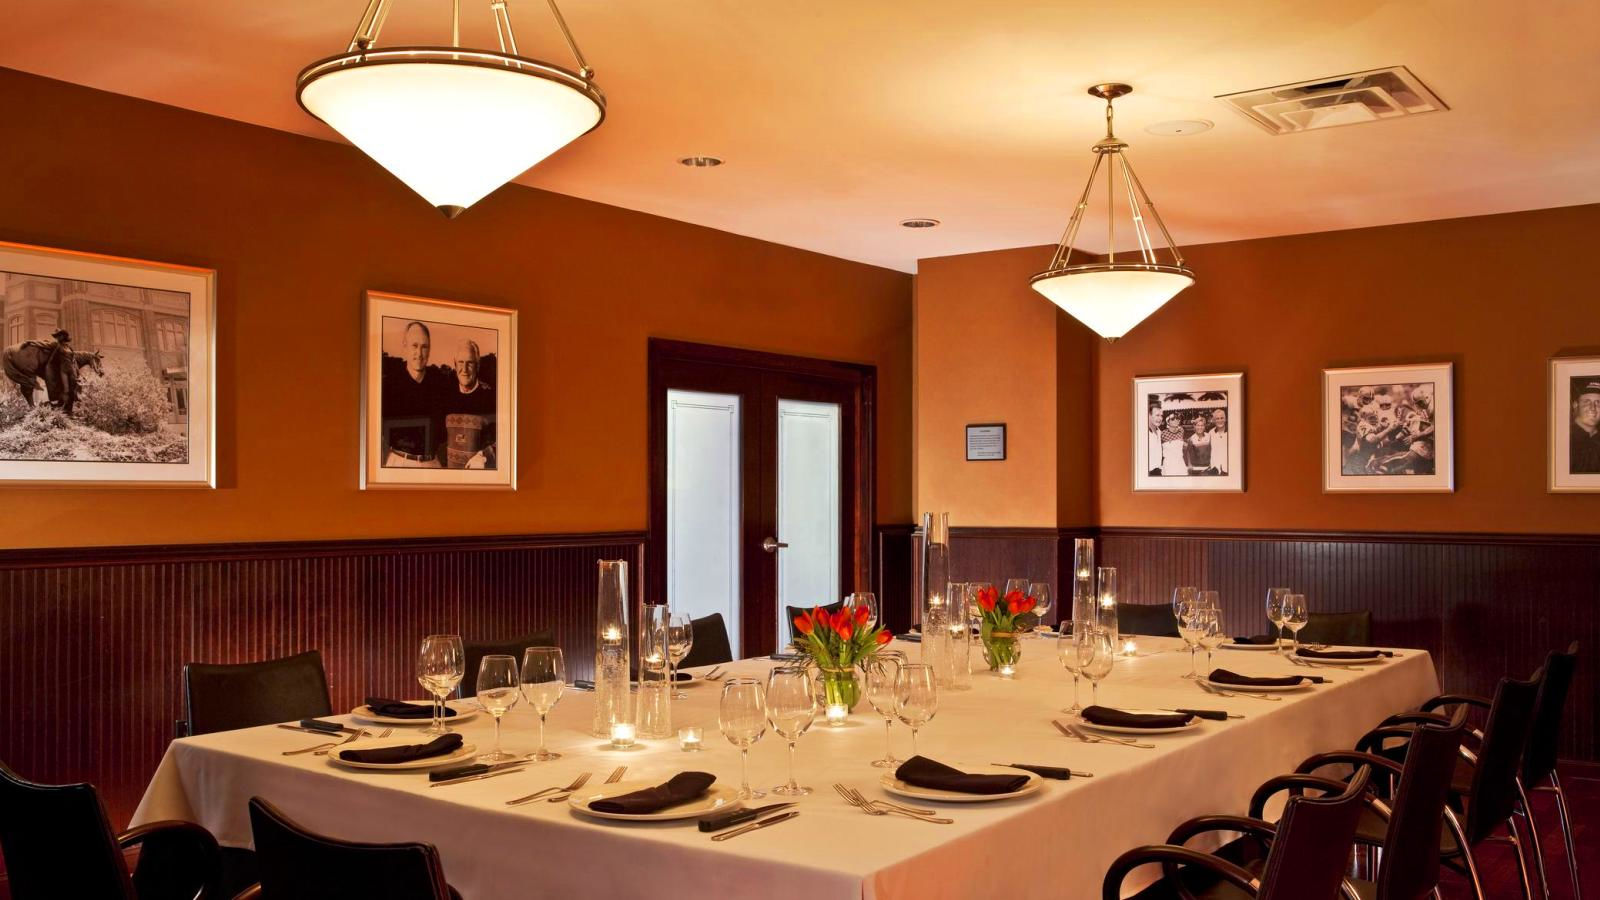 Fort Worth Restaurant - Private Dining